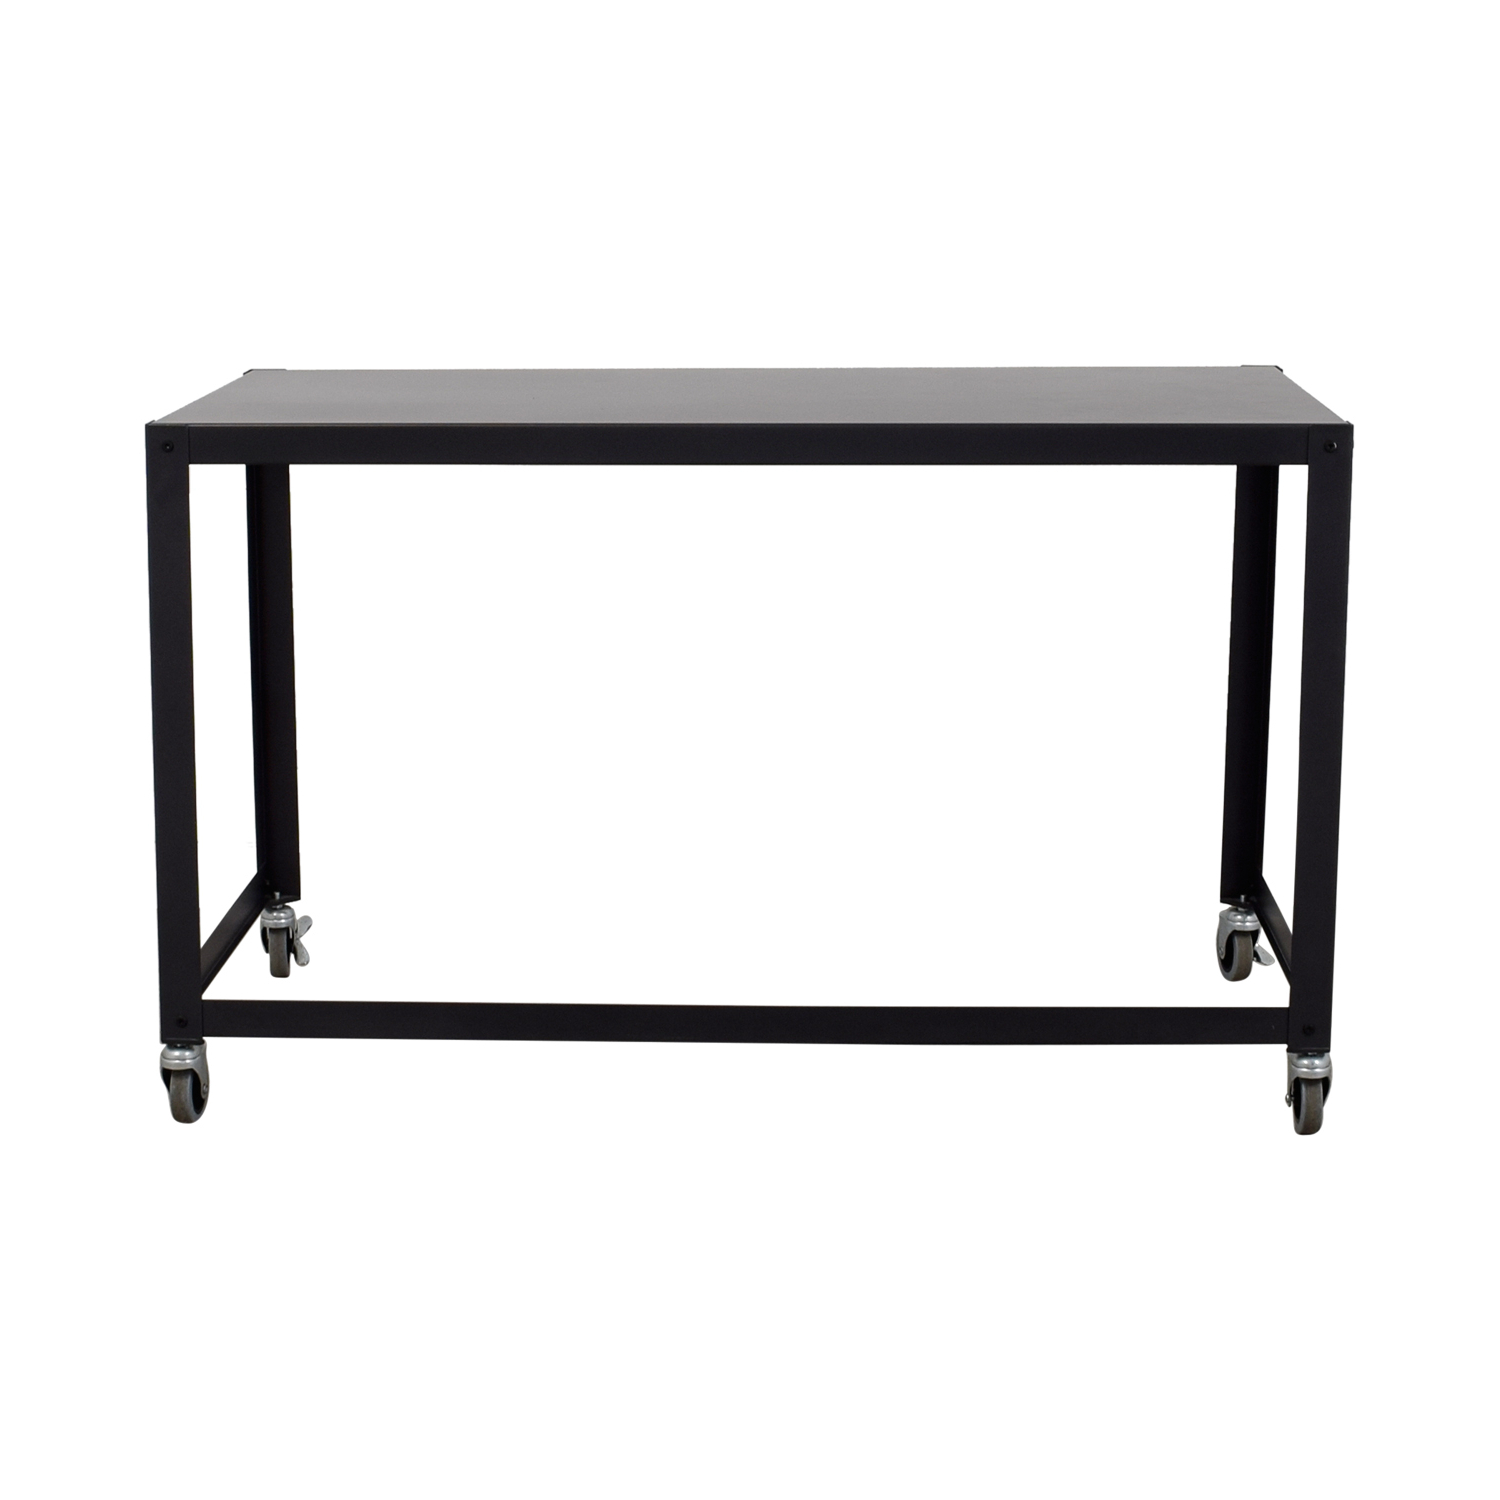 [%44% Off – Cb2 Cb2 Go Cart Rolling Desk / Tables Within 2019 Go Cart White Rolling Coffee Tables|Go Cart White Rolling Coffee Tables Regarding Current 44% Off – Cb2 Cb2 Go Cart Rolling Desk / Tables|Most Recently Released Go Cart White Rolling Coffee Tables With Regard To 44% Off – Cb2 Cb2 Go Cart Rolling Desk / Tables|Widely Used 44% Off – Cb2 Cb2 Go Cart Rolling Desk / Tables In Go Cart White Rolling Coffee Tables%] (View 2 of 20)